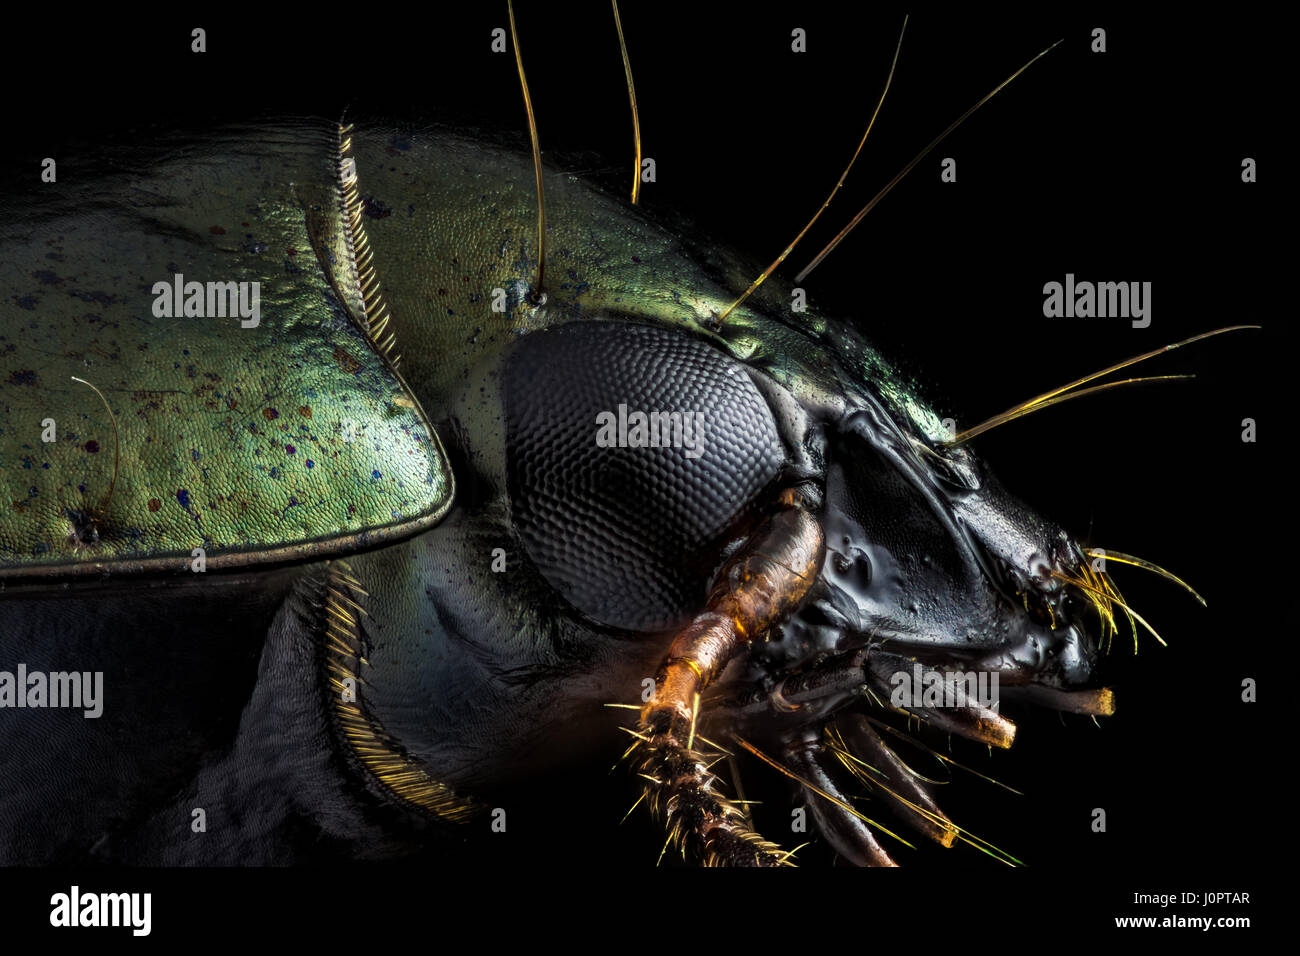 Extreme macro - Profile portrait of a green beetle photographed through a microscope at x10 magnification. - Stock Image